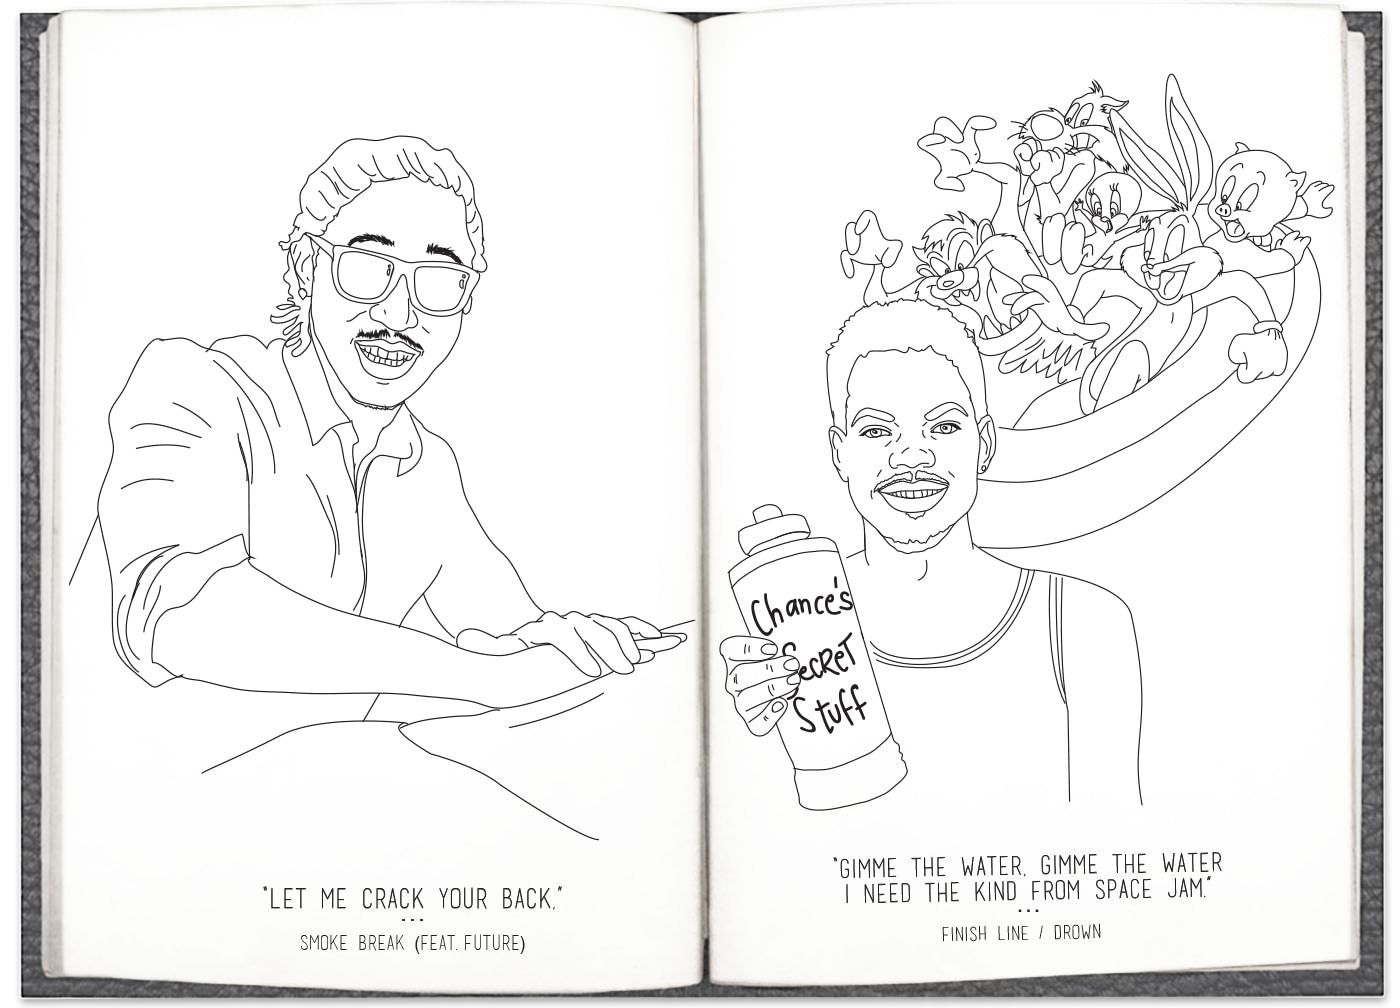 Chance The Rapper S Coloring Book Lyrics Have Been Adapted Into Coloring Home